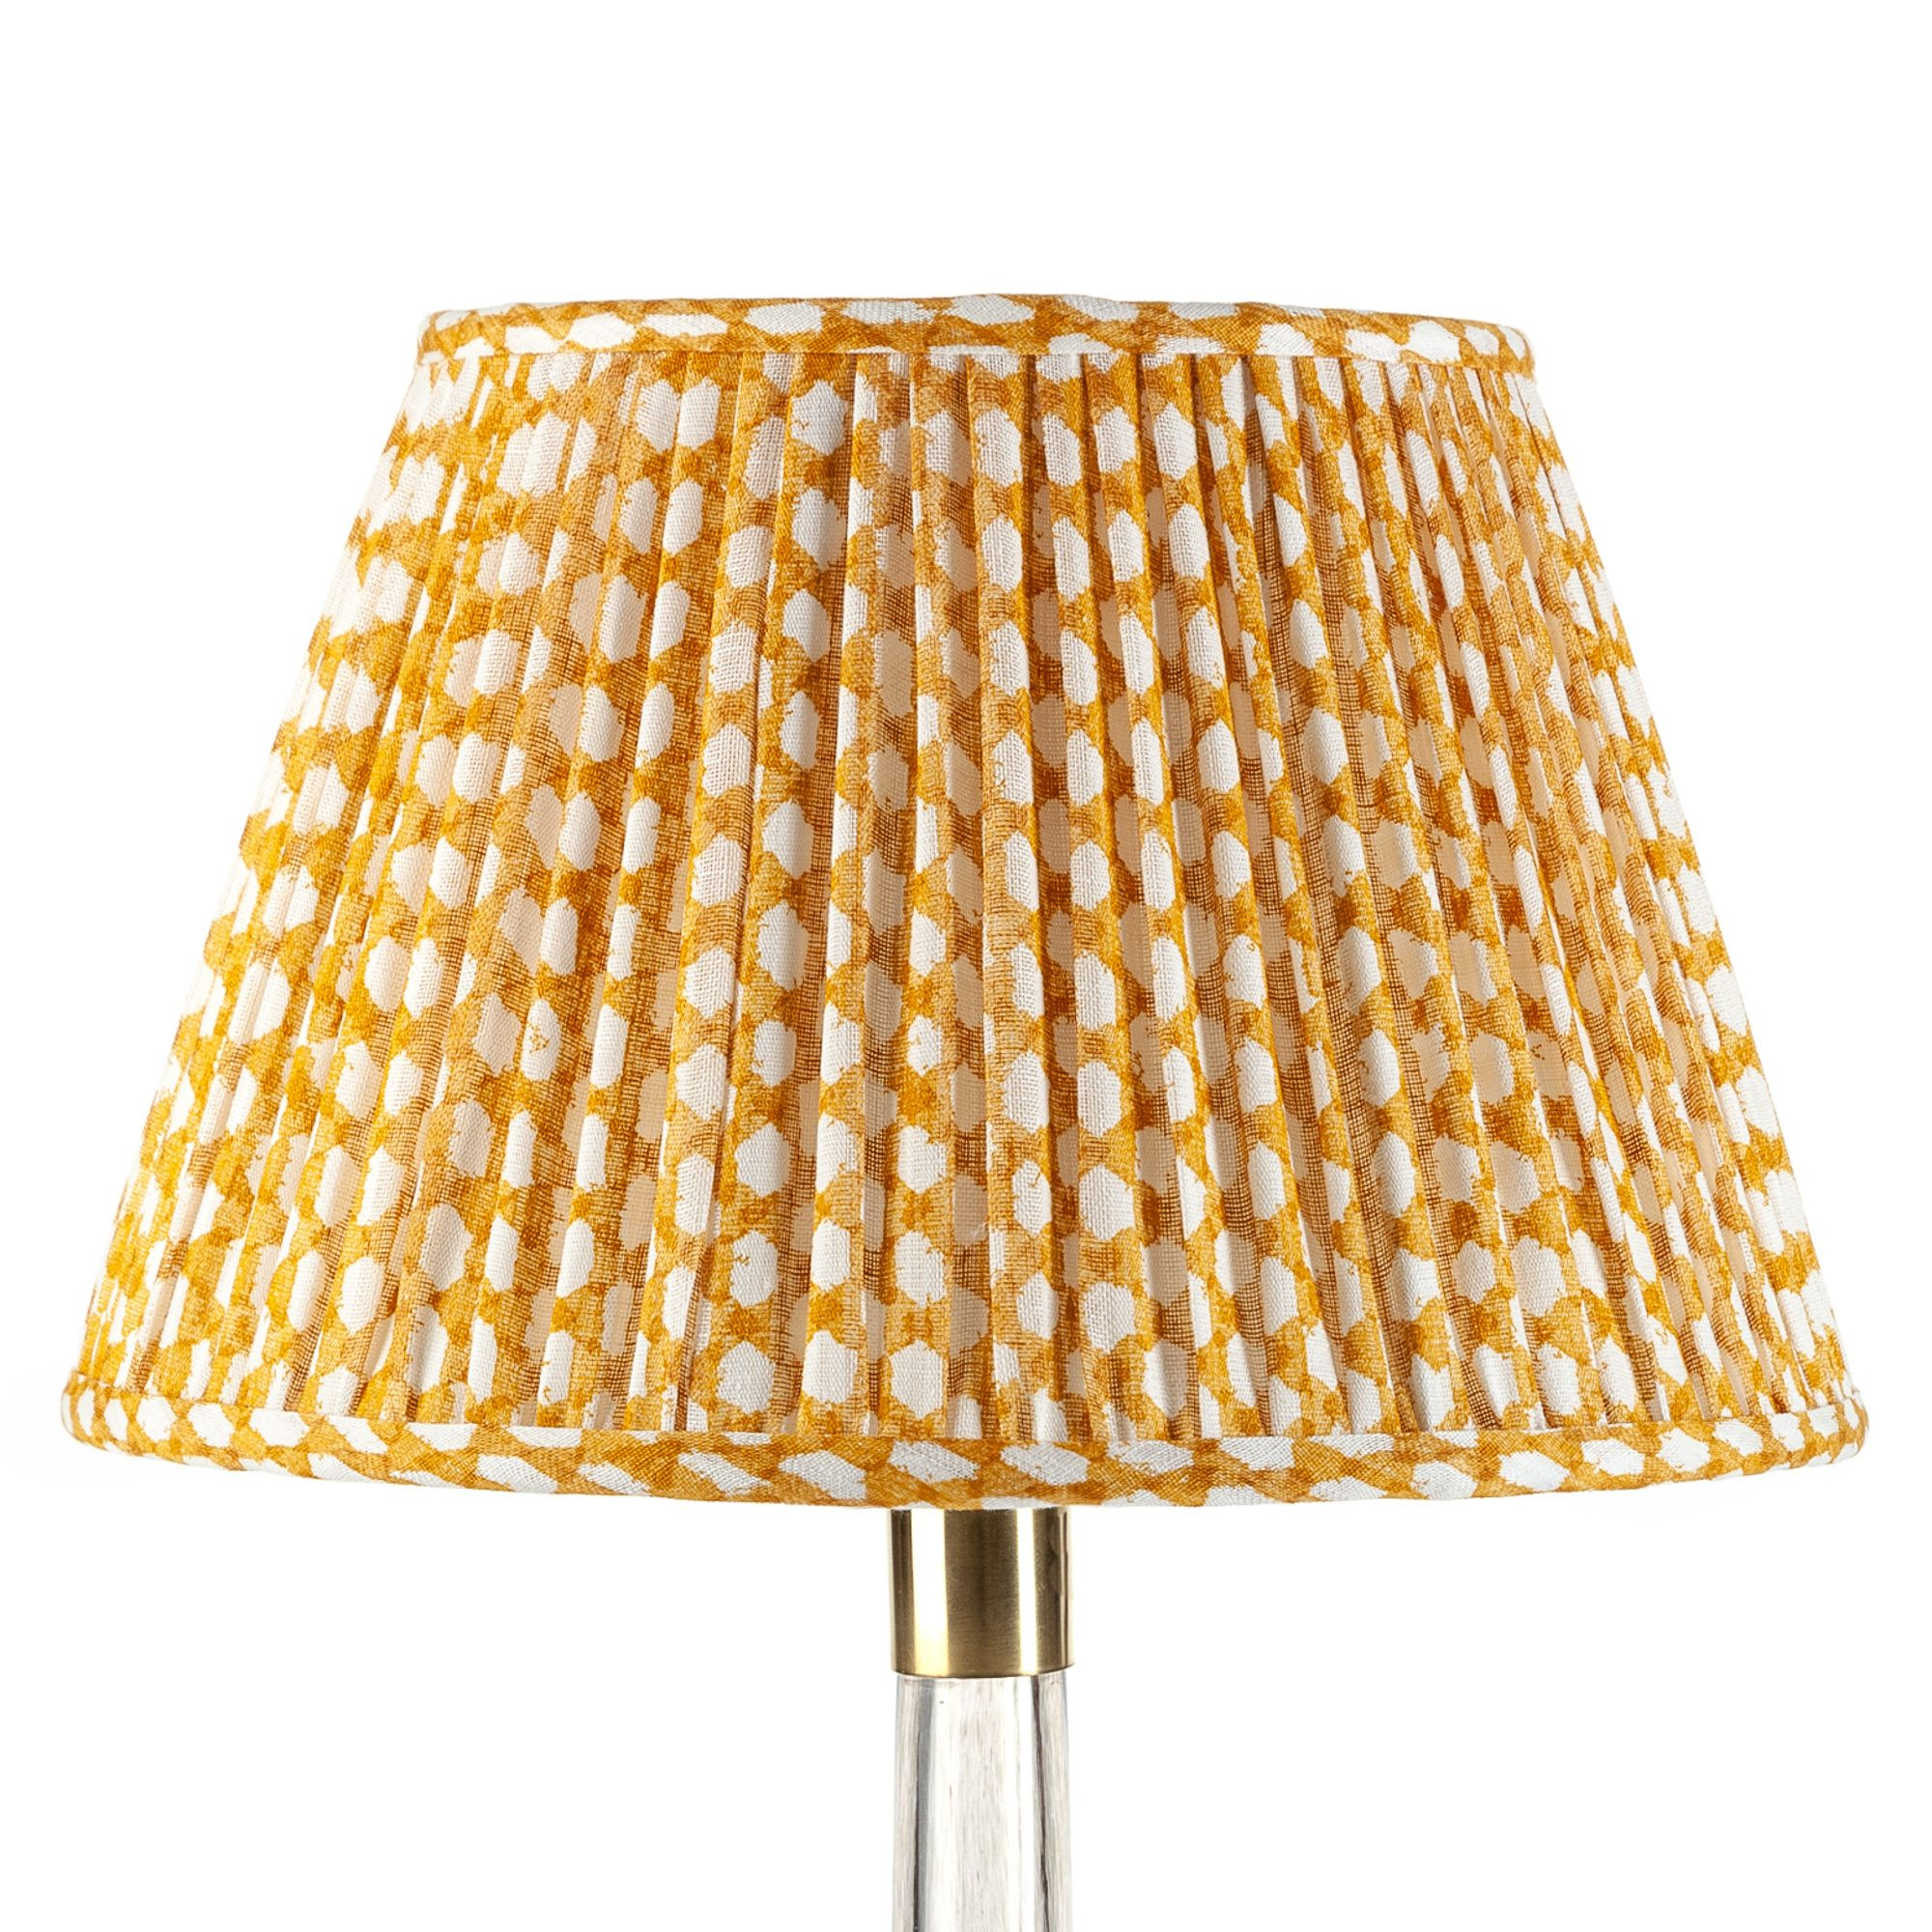 pg-023-empire-gathered-lampshade-in-yellow-wicker-023-1